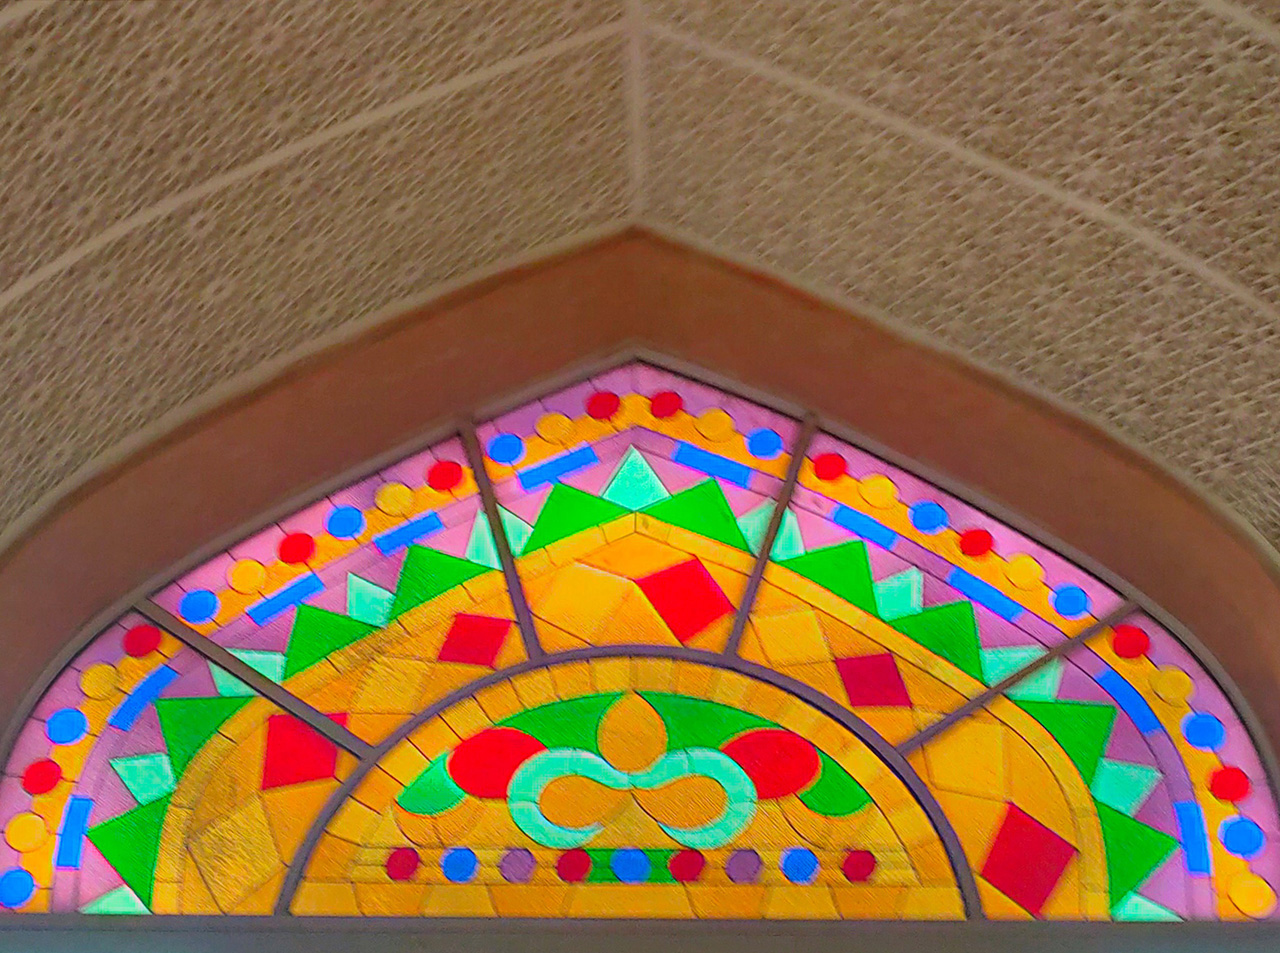 Stained Glass Artwork at Mutrah Corniche